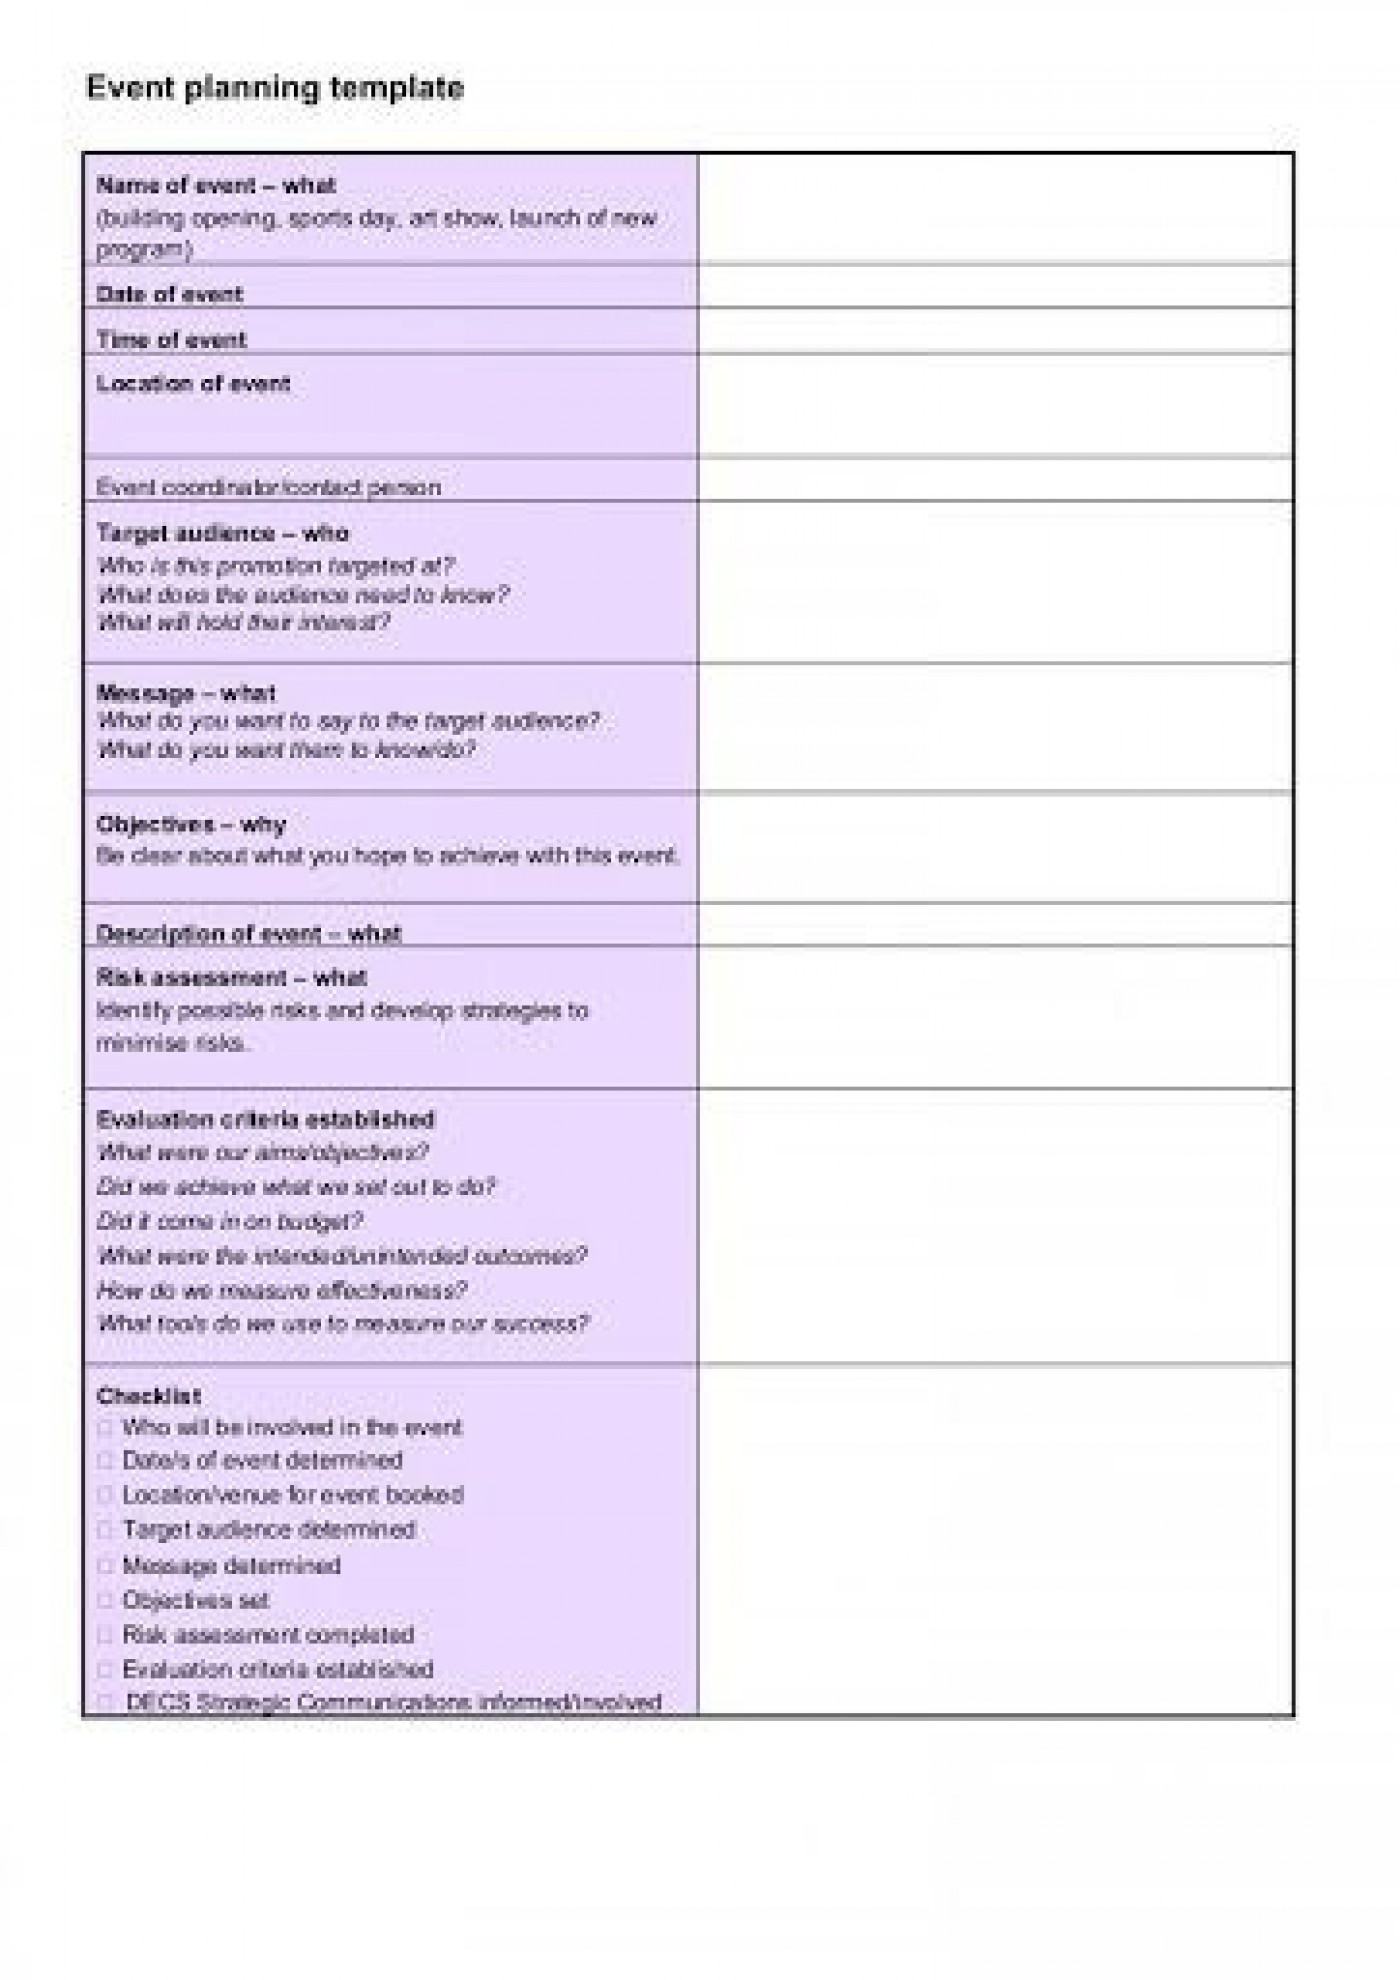 009 Excellent Free Event Planning Template Checklist Image  Planner Party1400